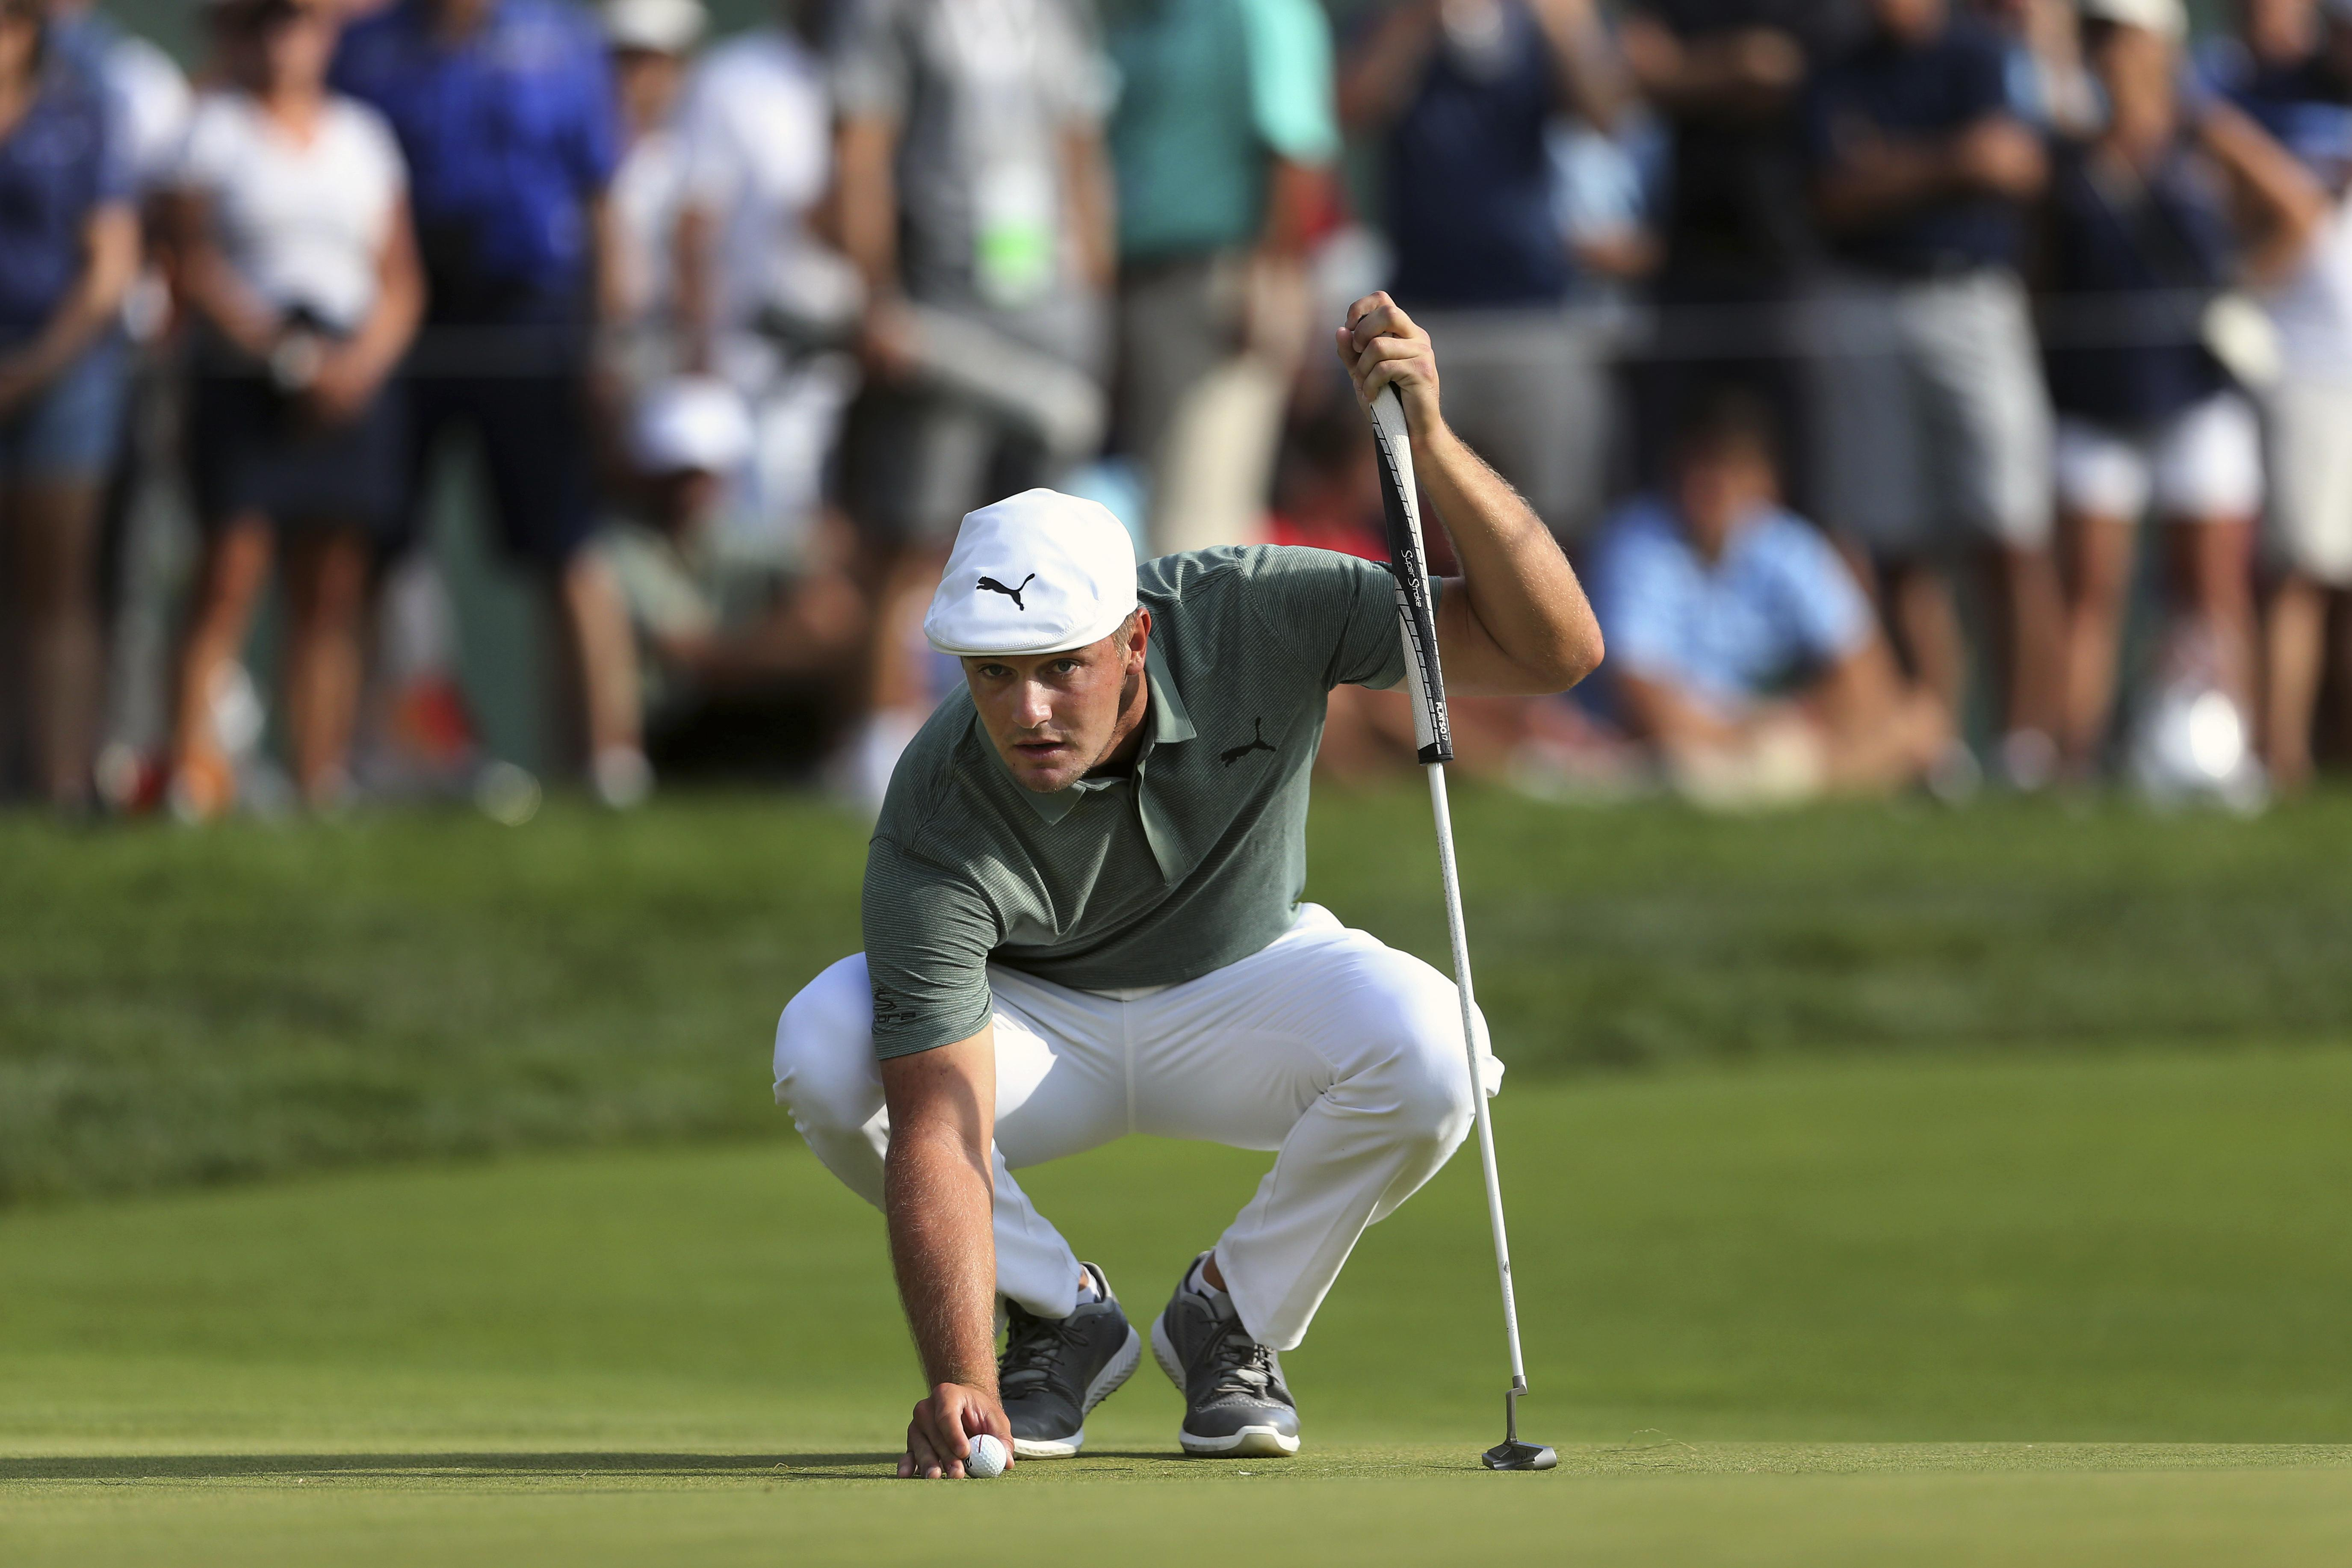 b8c36b6d Bryson DeChambeau eyes his putt as he places his ball on the green at the  18th